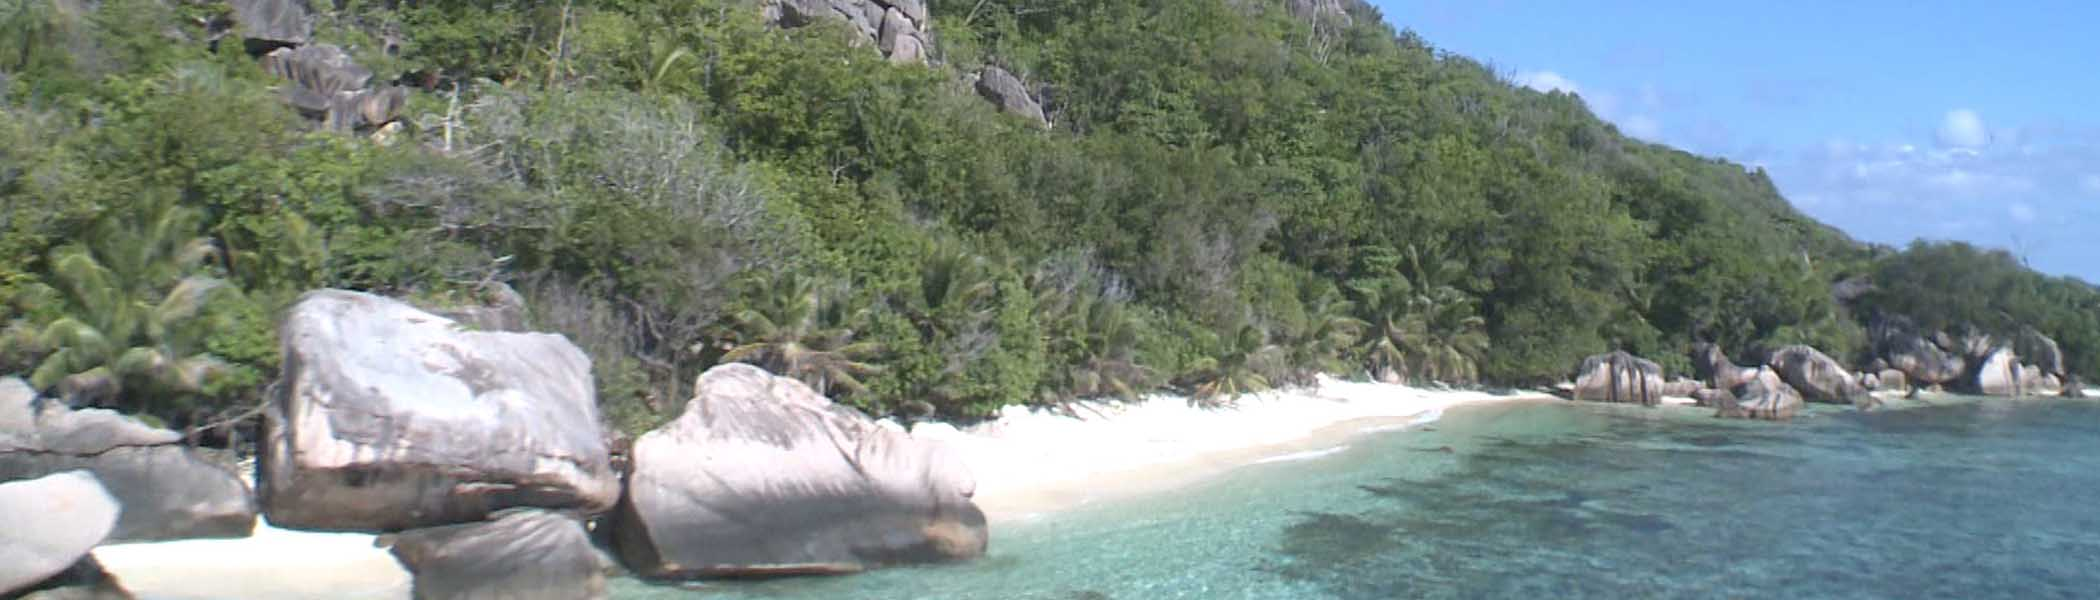 anse-pierrot, Beaches in Seychelles Islands